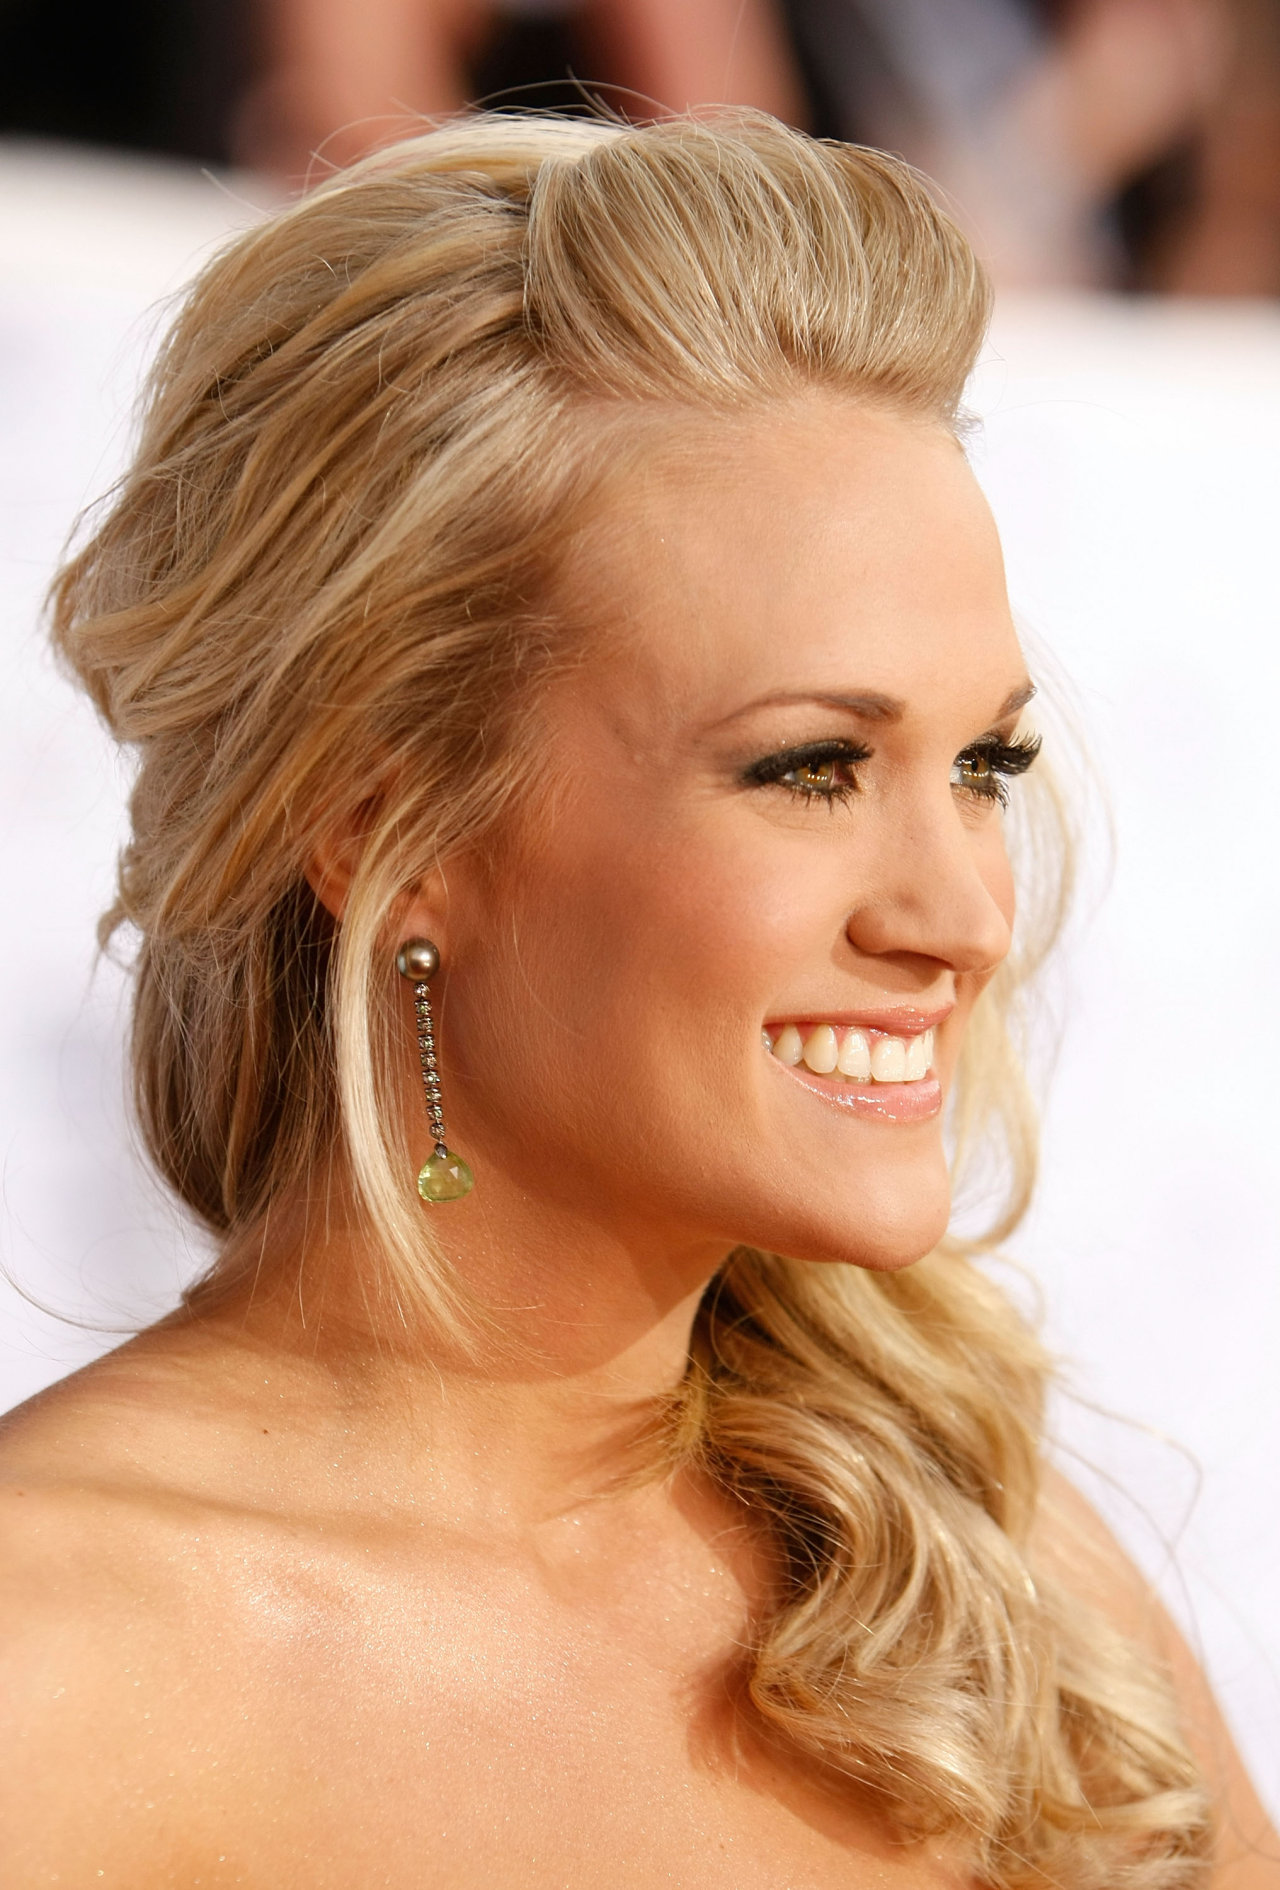 Carrie Underwood leaked wallpapers